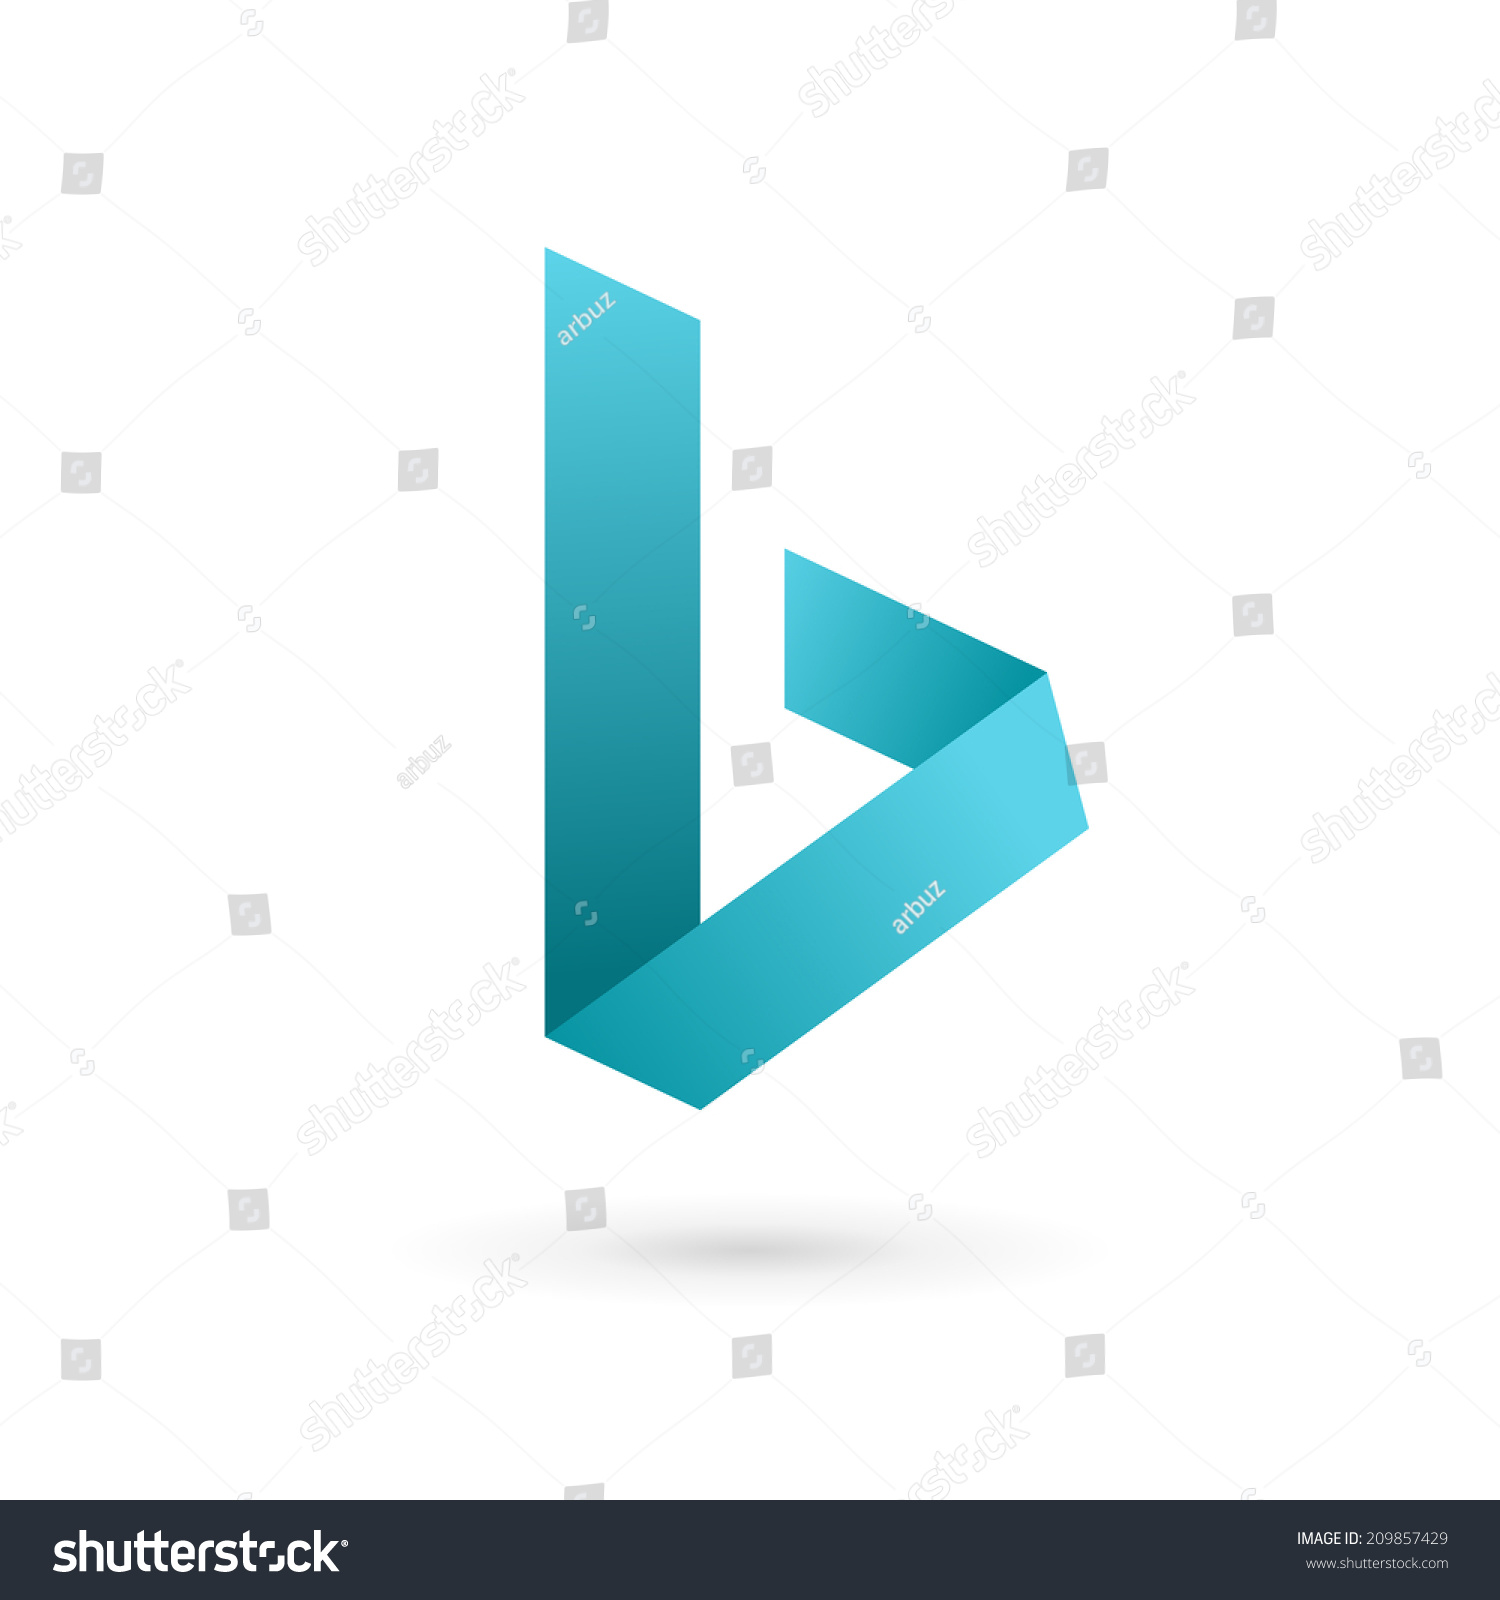 Letter b logo icon design template stock vector 209857429 letter b logo icon design template elements vector color sign pronofoot35fo Image collections